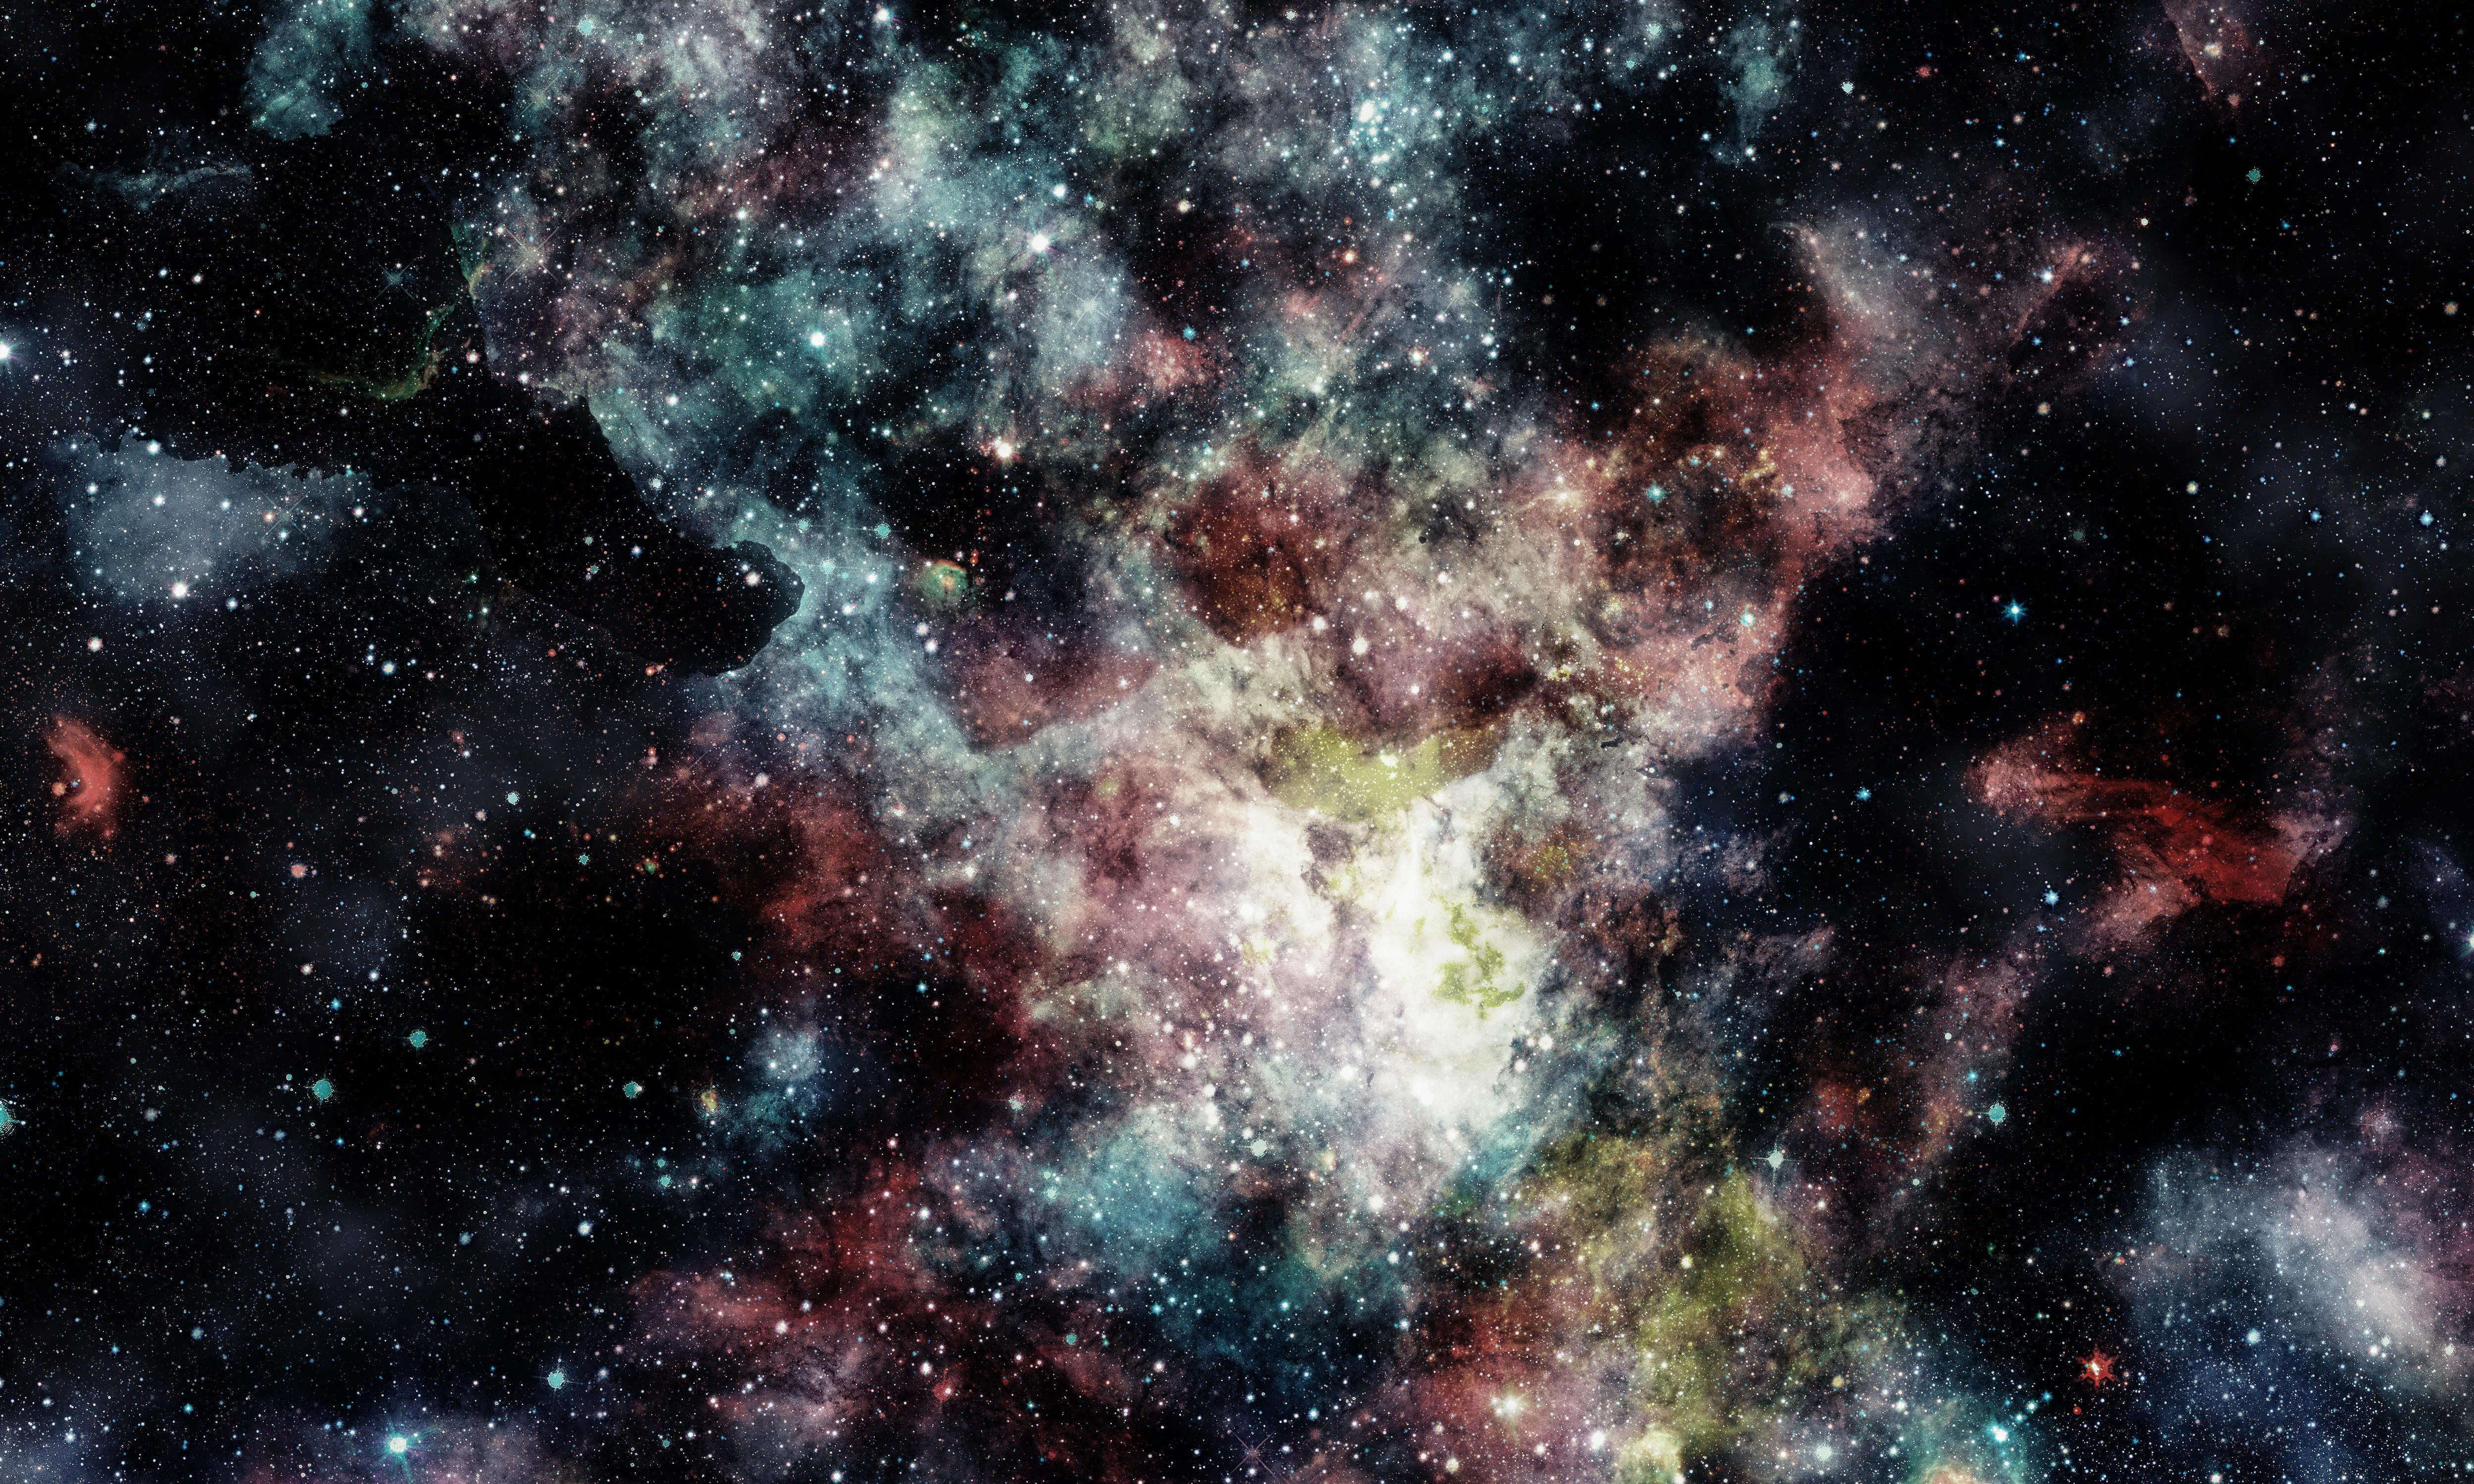 Nearby galaxy set to collide with Milky Way, say scientists